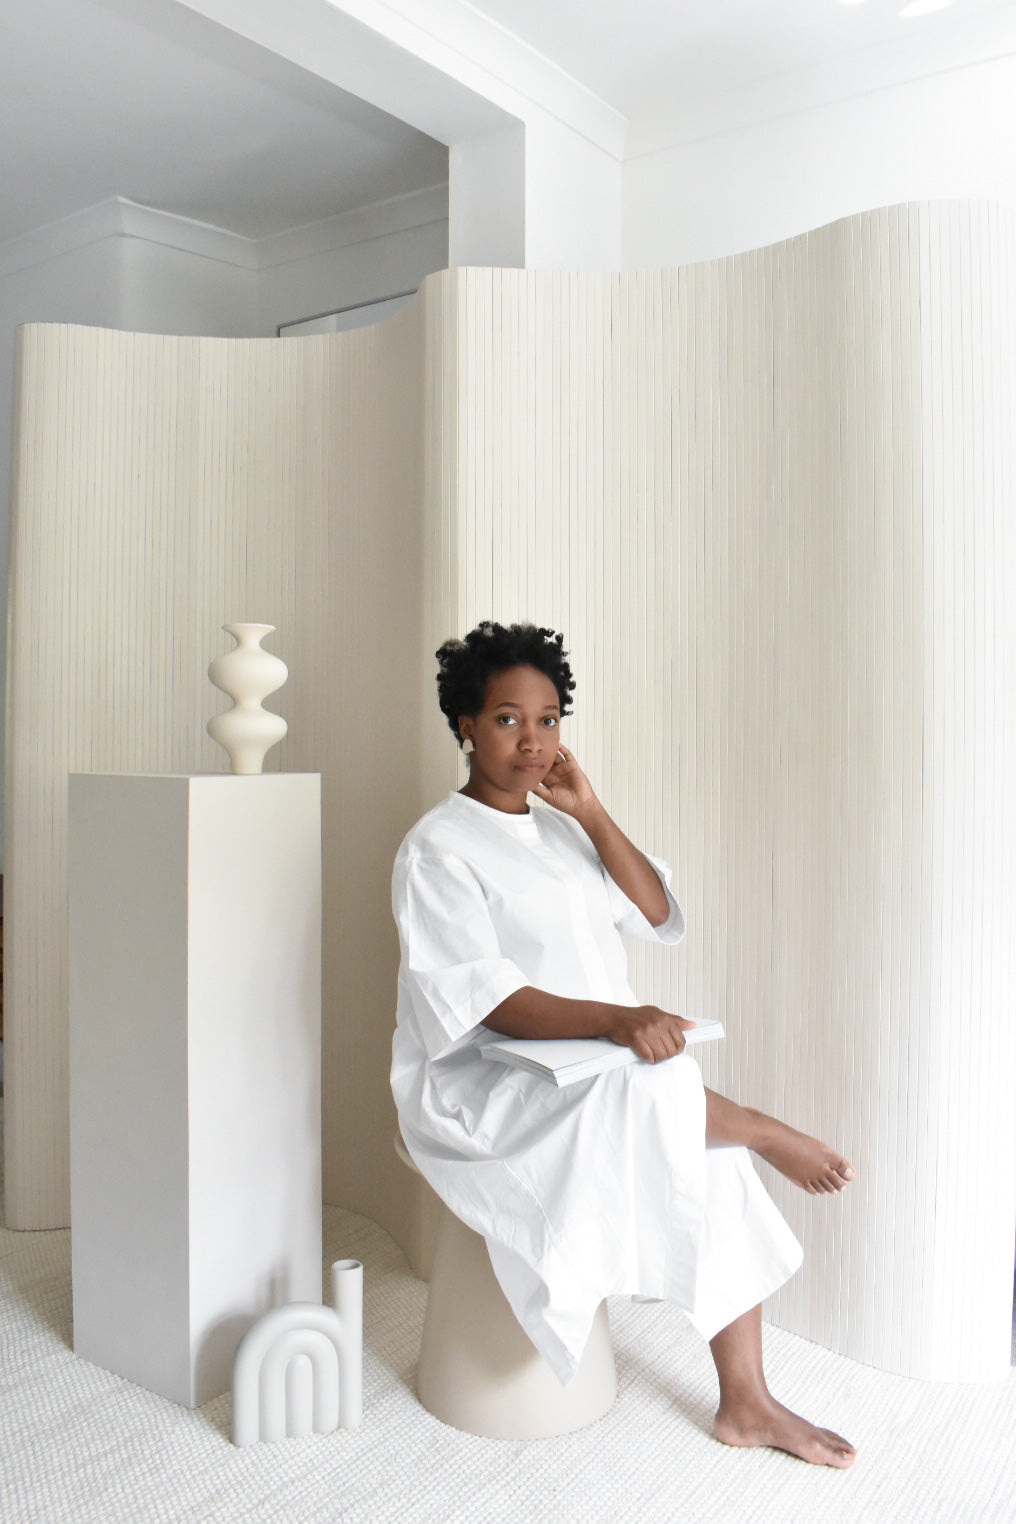 ISE - Hali Mason interview in her minimal home